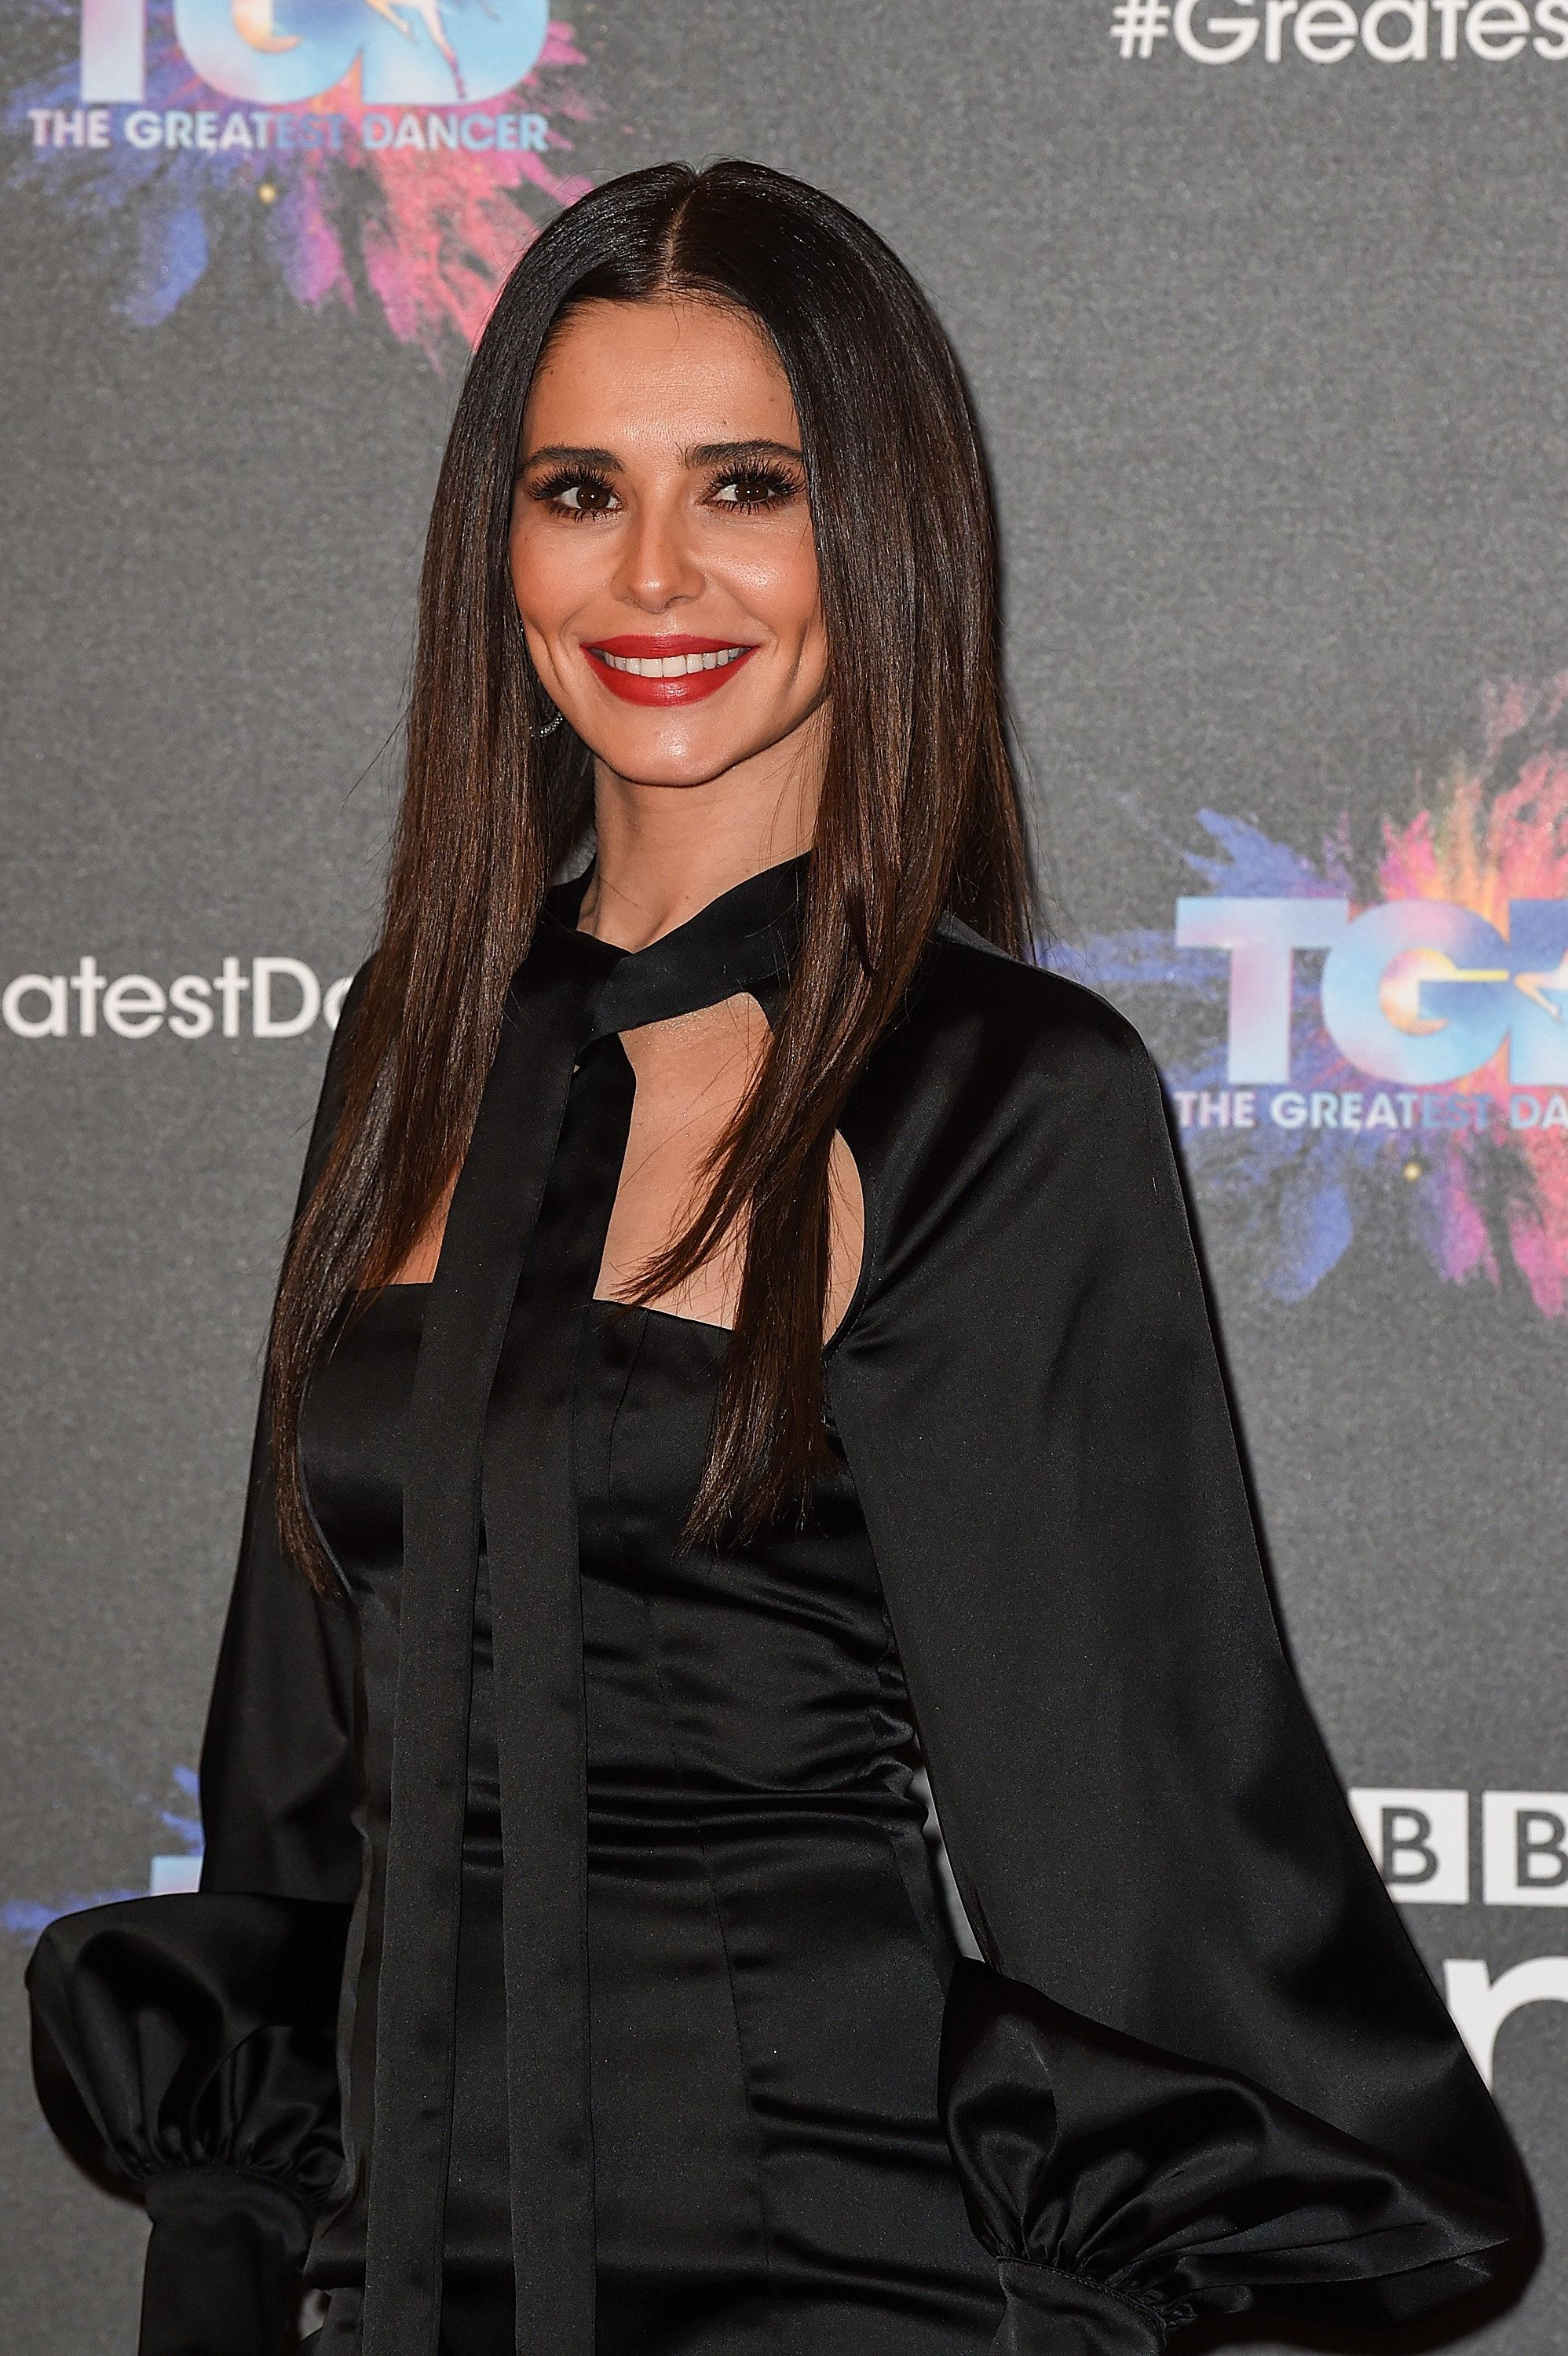 BBC Rubbishes Claims Cheryl Is Being 'Sidelined' By 'The Greatest Dancer'